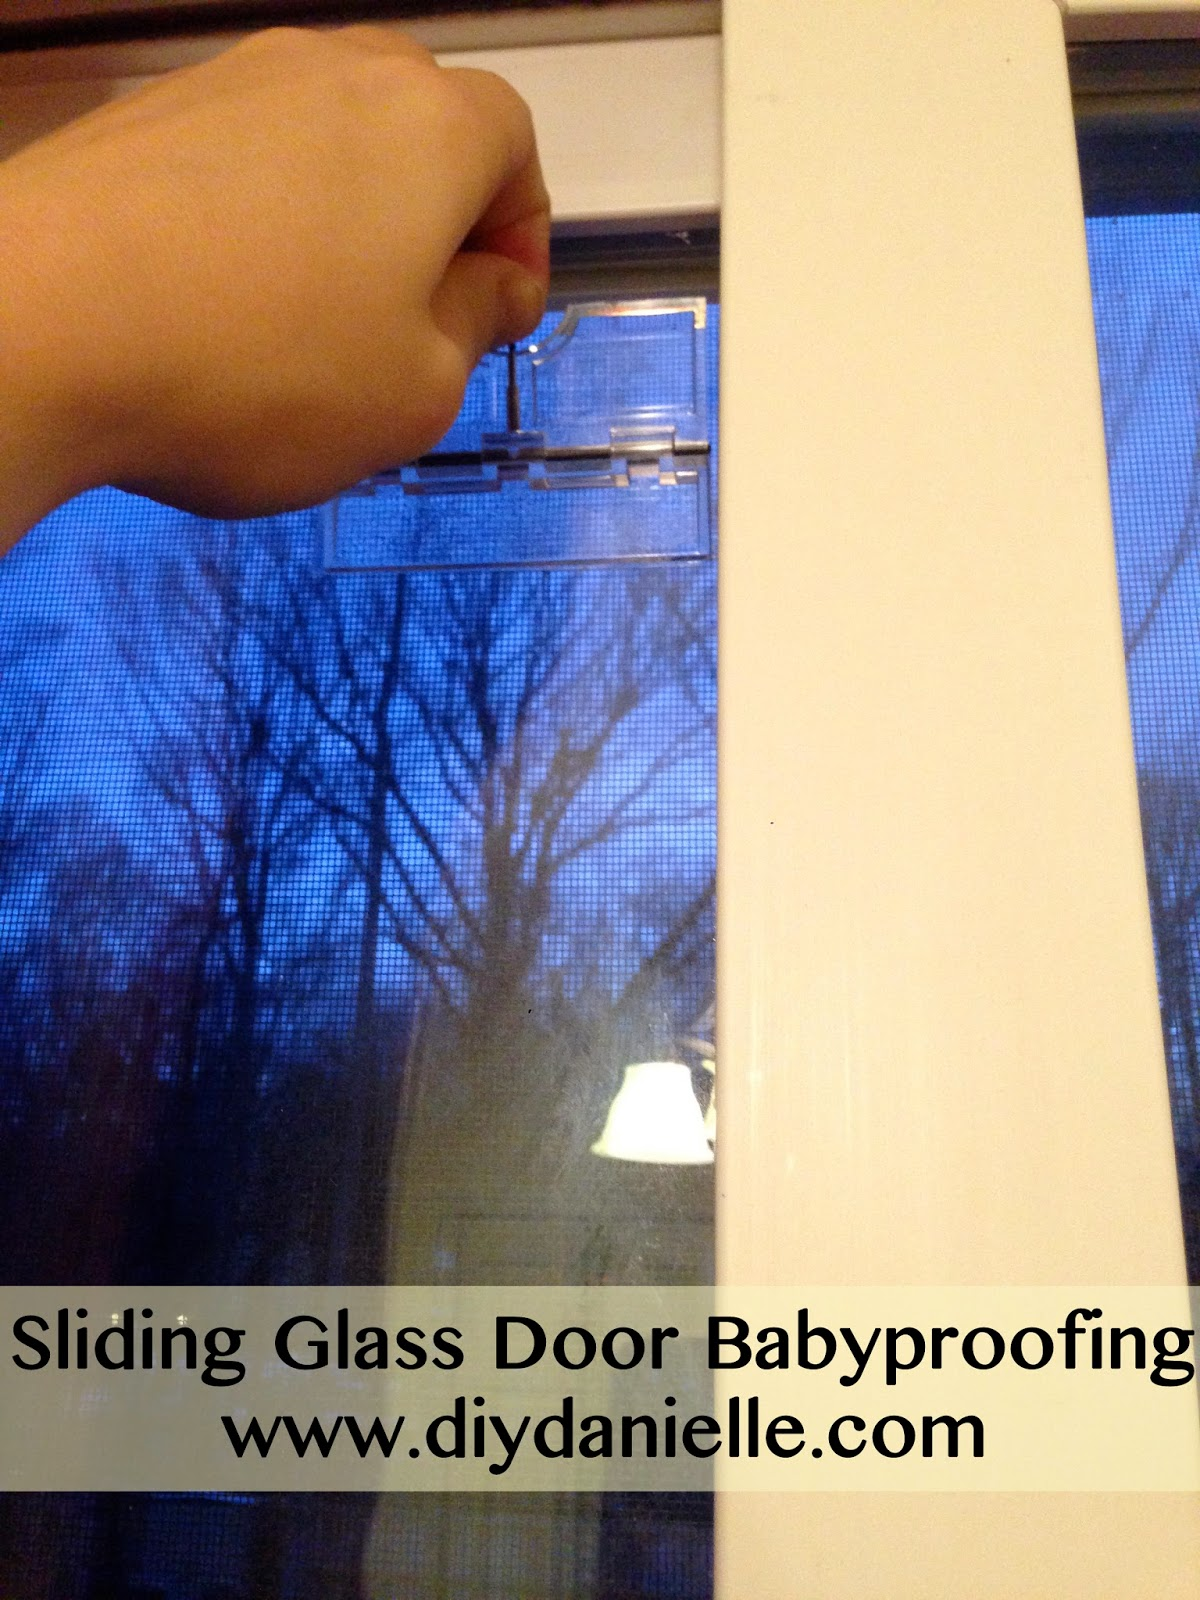 Review of an item we used to baby proof our sliding glass door